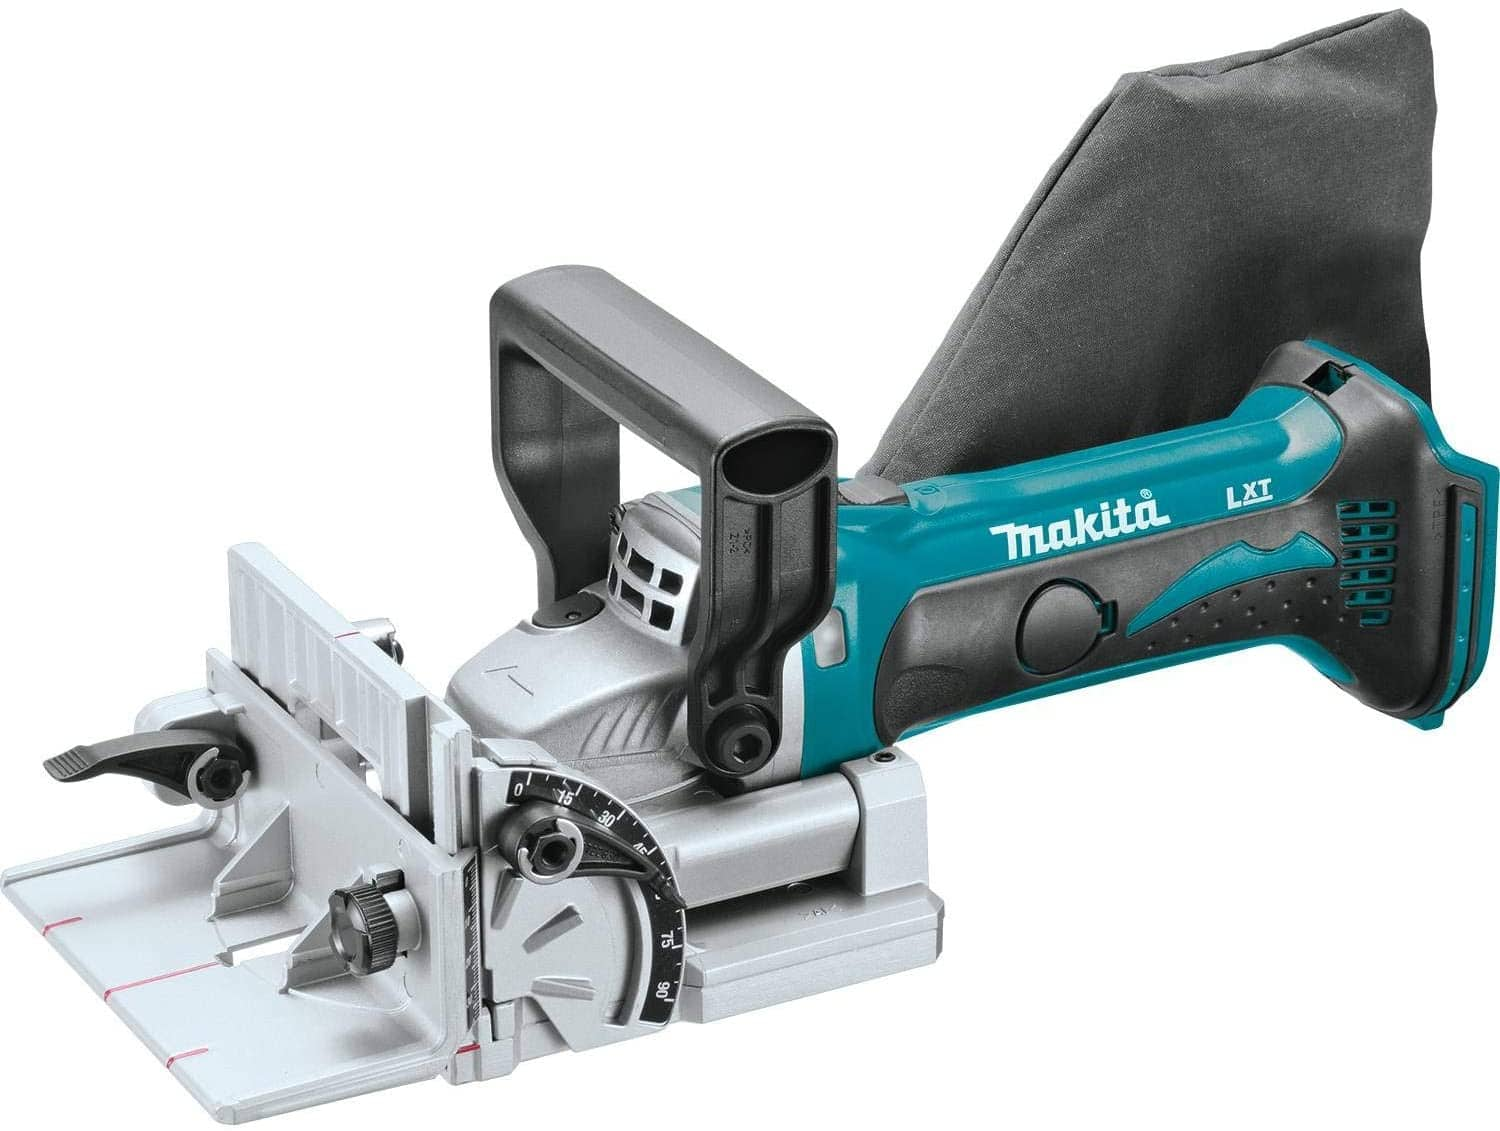 Makita 18-Volt LXT Lithium-Ion 0.75 in. Cordless Plate Joiner (Tool-Only); 155.22$ @HD